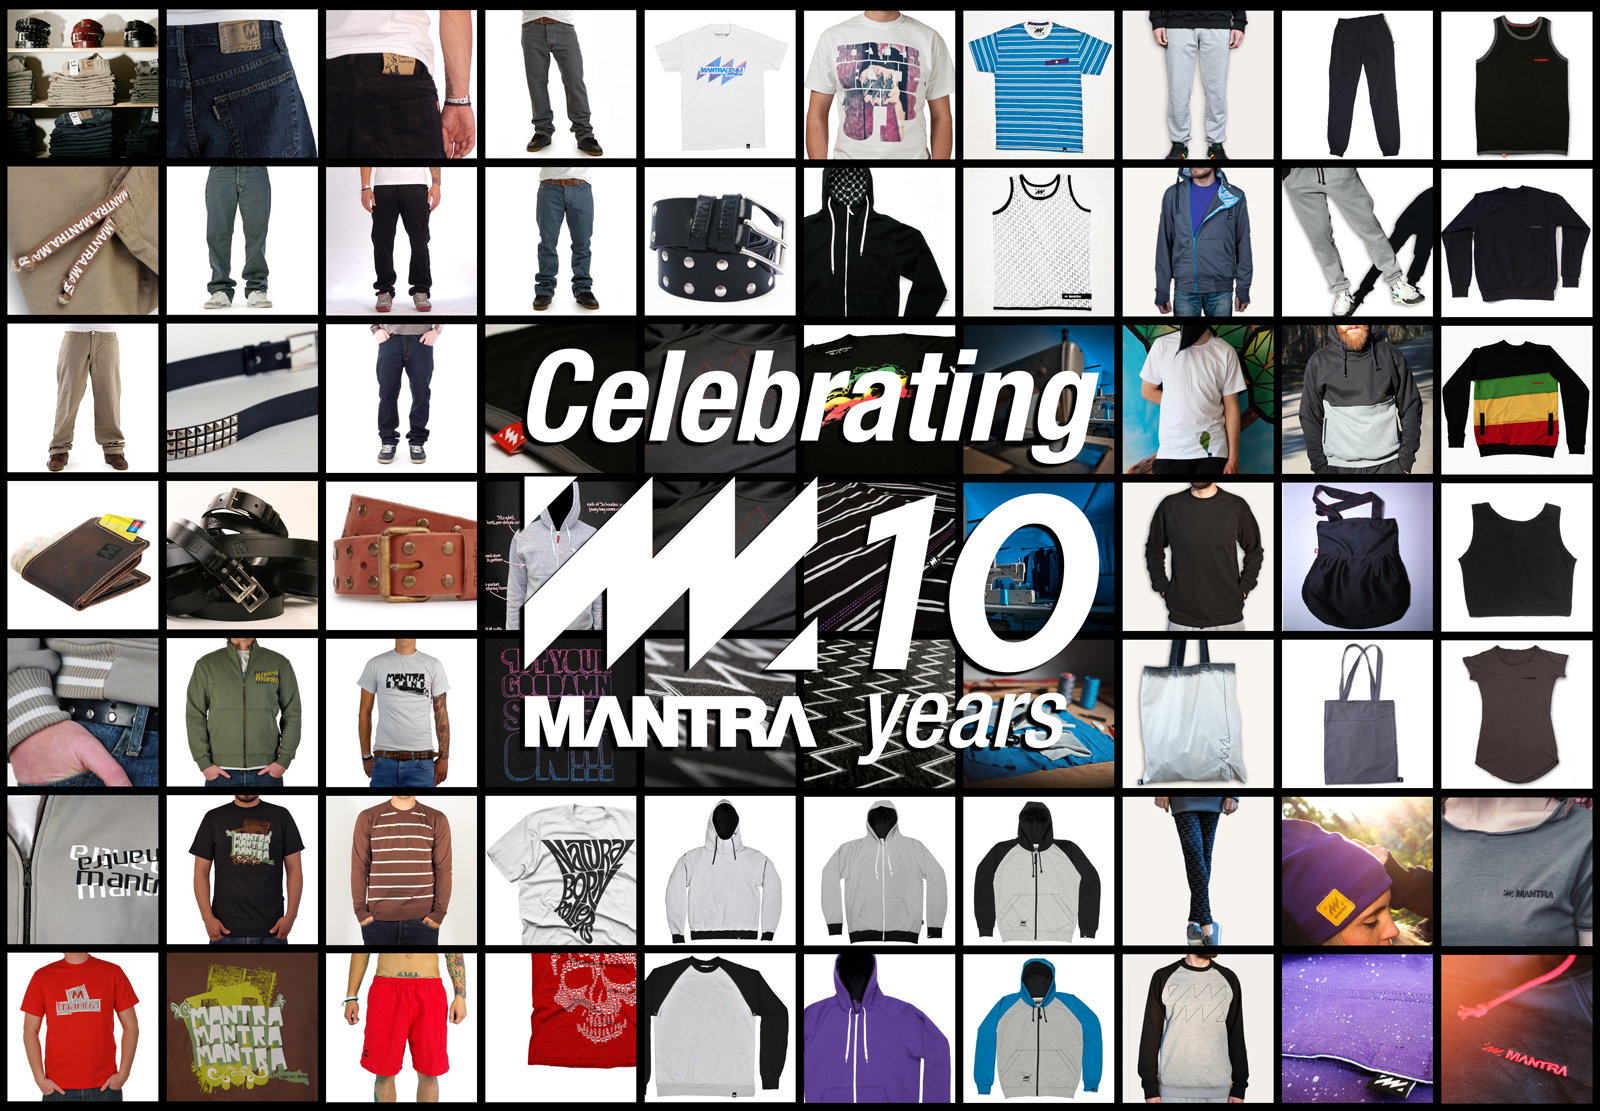 10 years of MANTRA